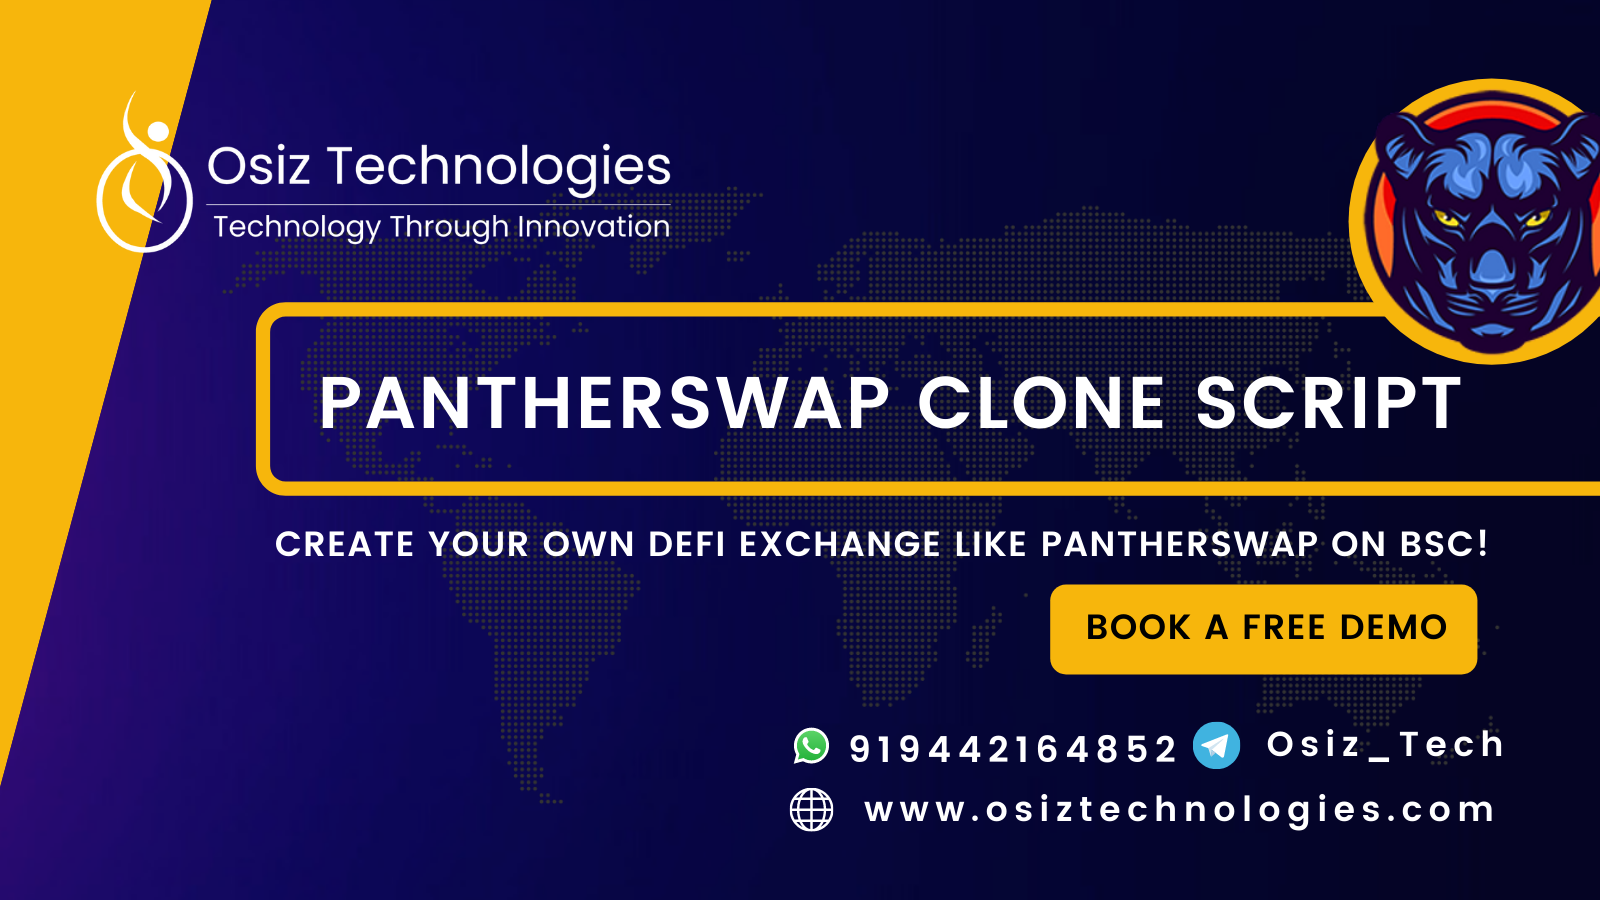 PantherSwap Clone Script - To Build DeFi based Decentralized Exchange like PantherSwap on Binance Smart Chain